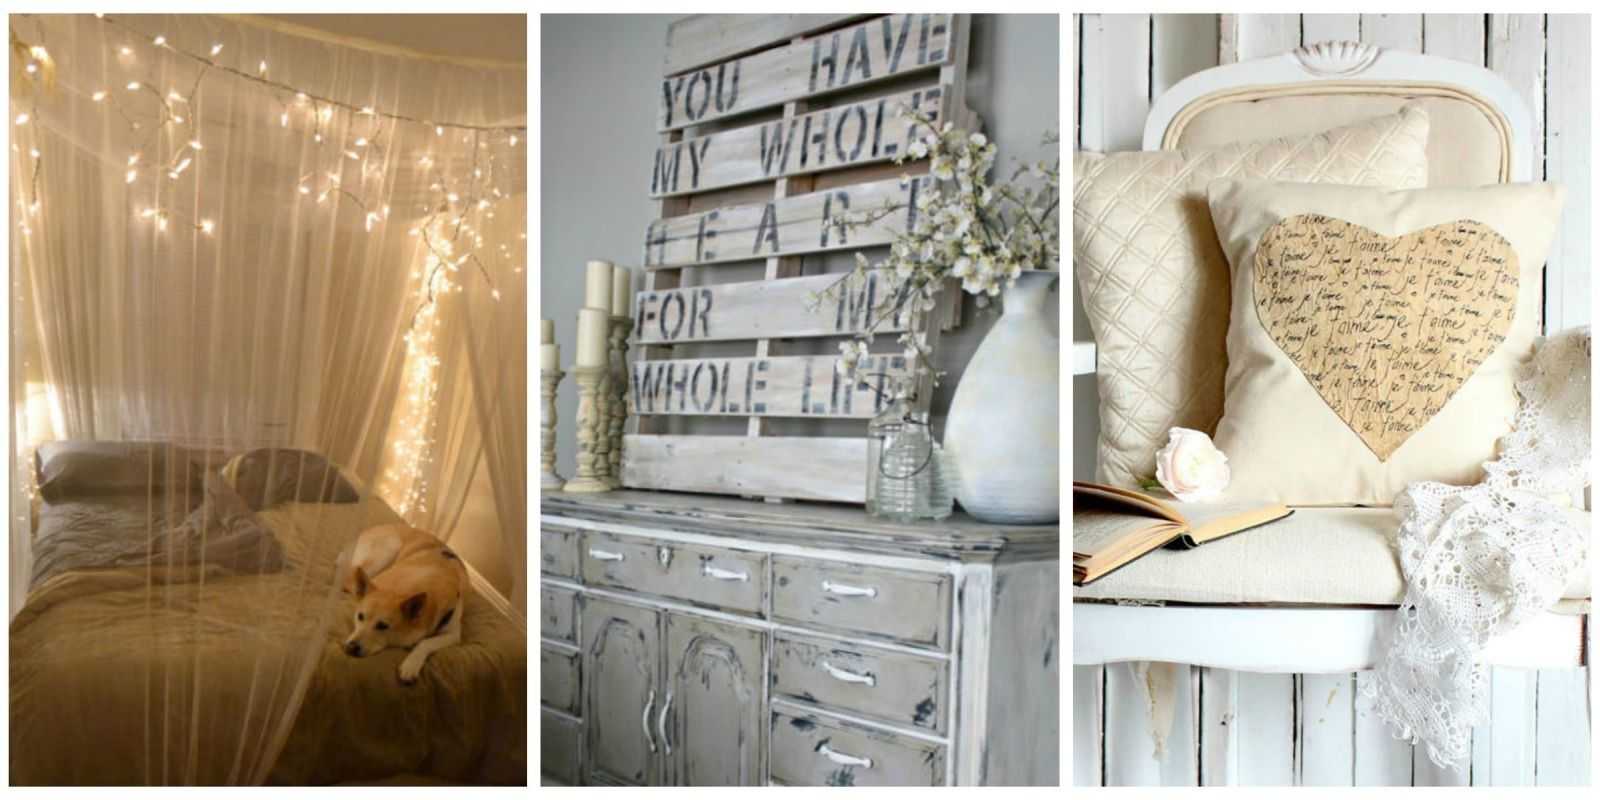 Turn Your Bedroom Into A Cozy Love Nest With These DIY Projects.